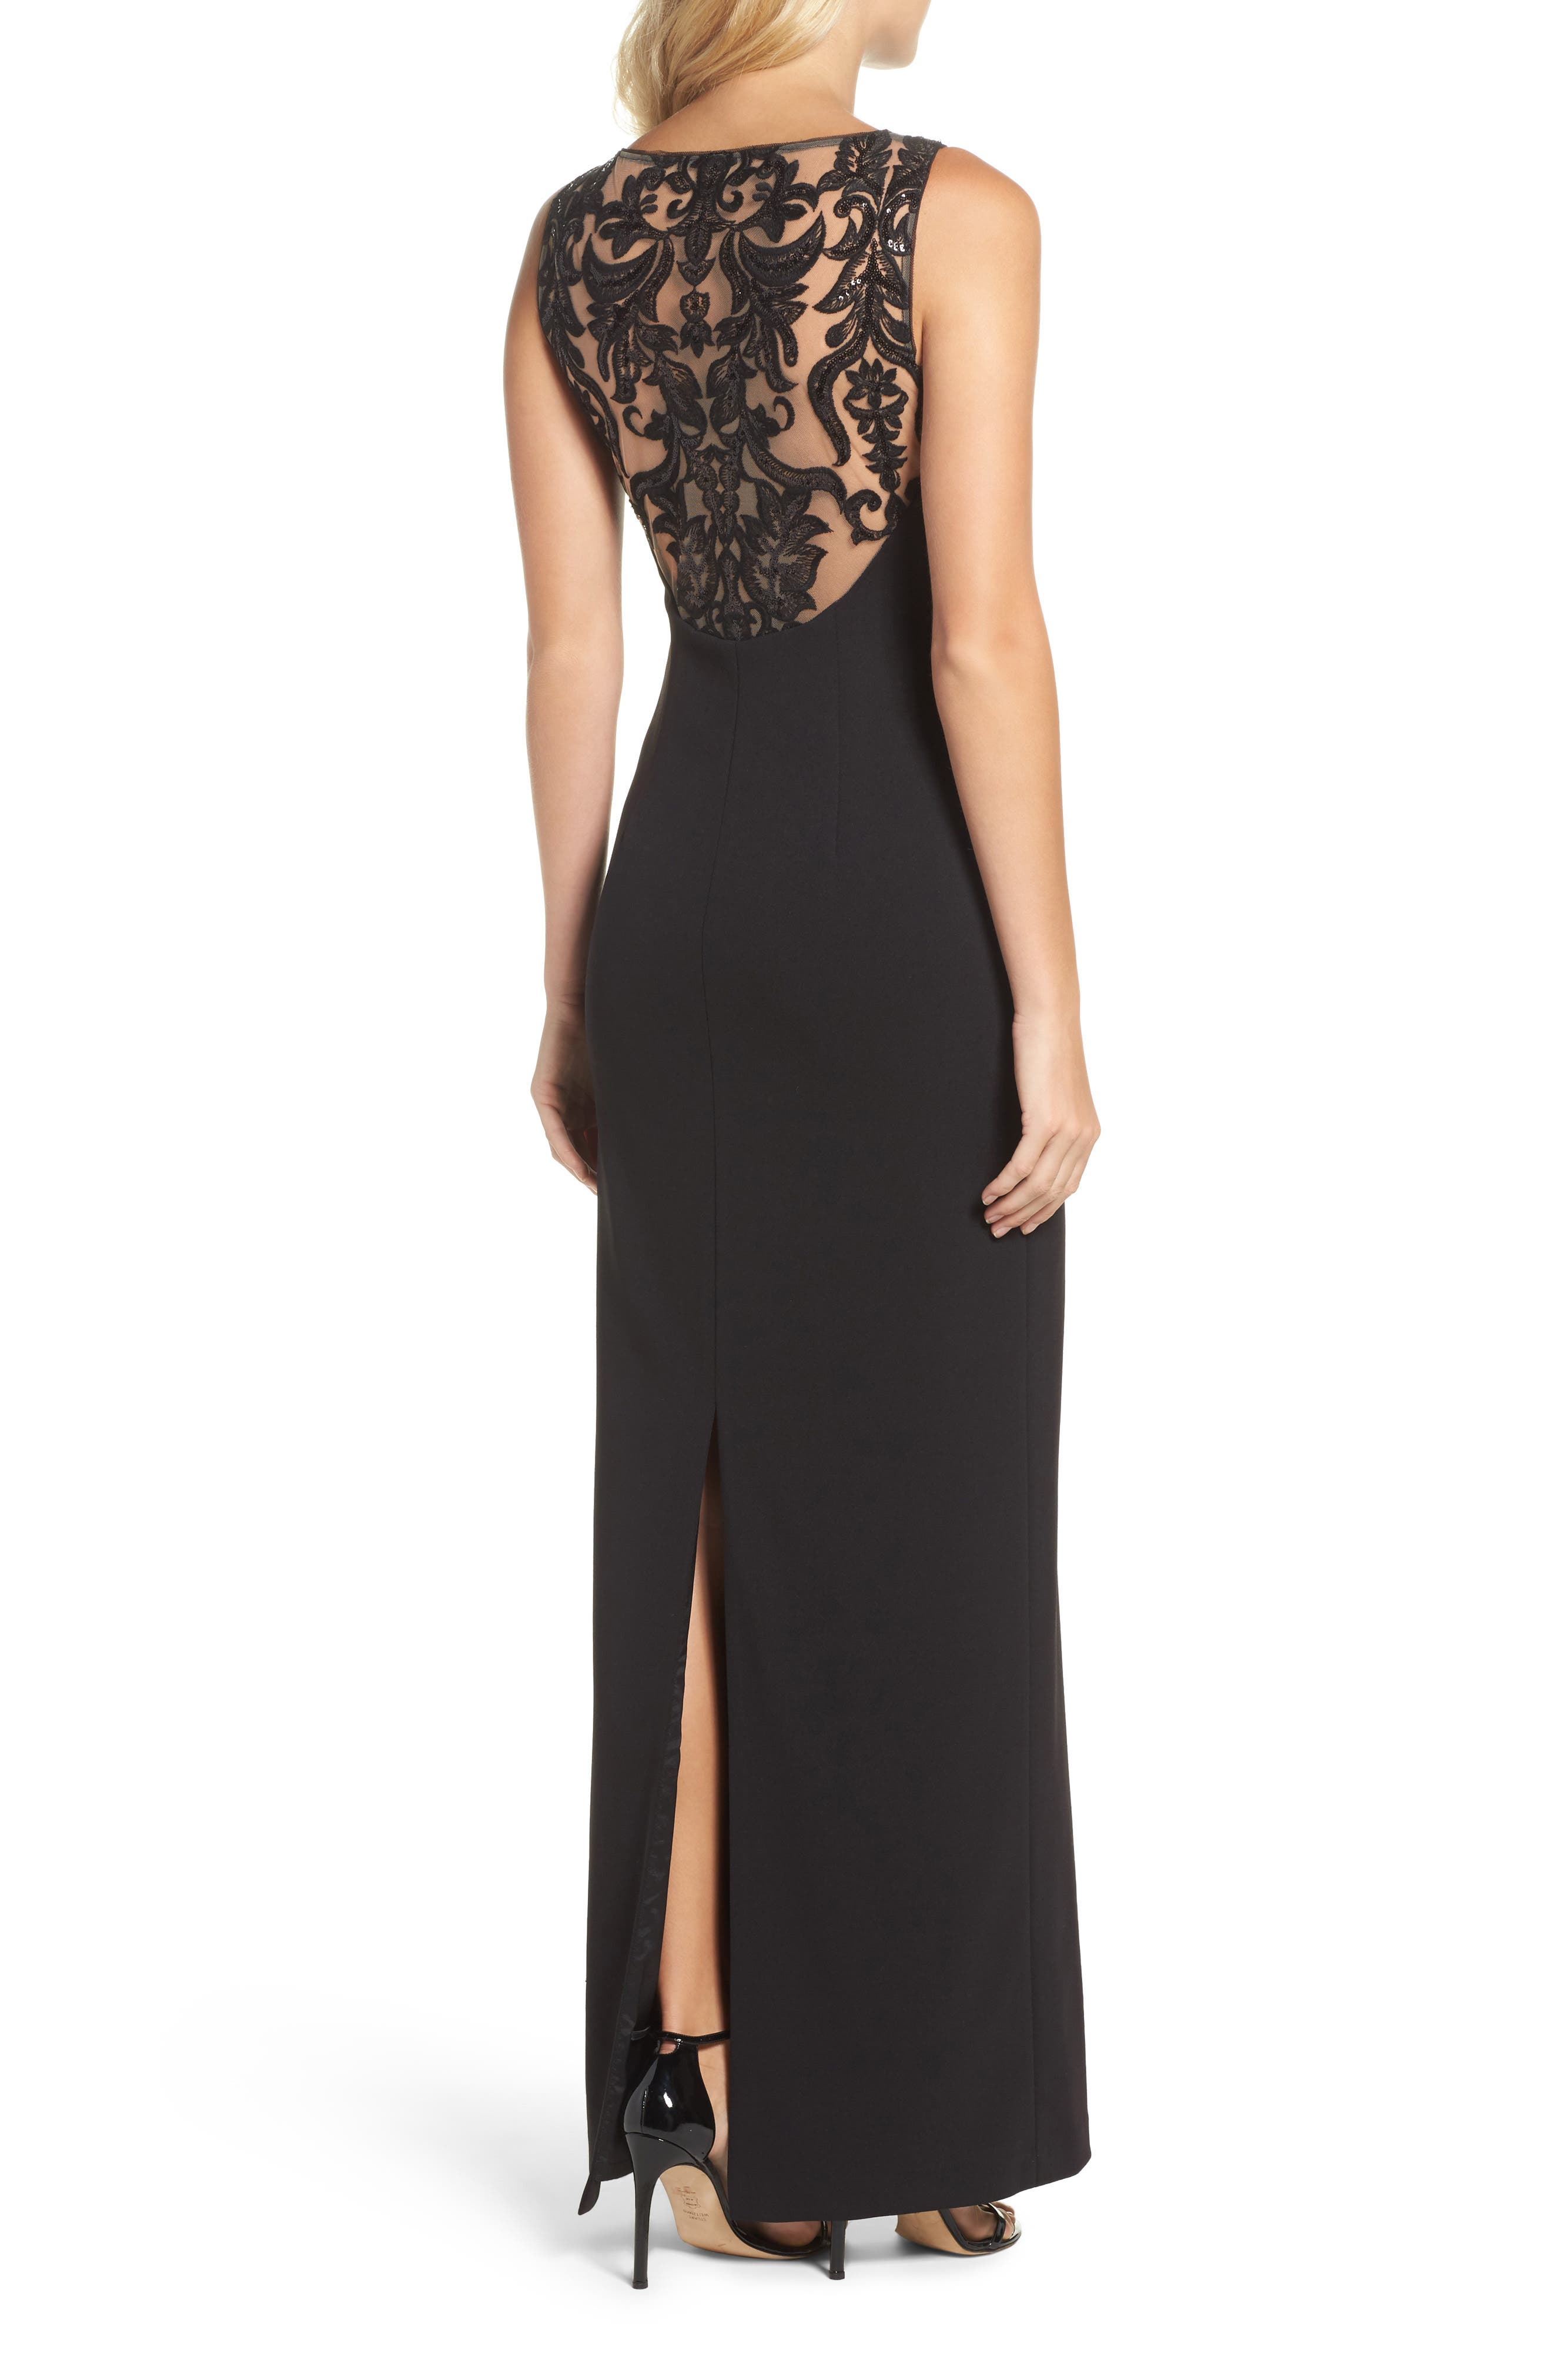 Alternate Image 1 Selected - Adrianna Papell Cowl Neck Embroidered Back Gown